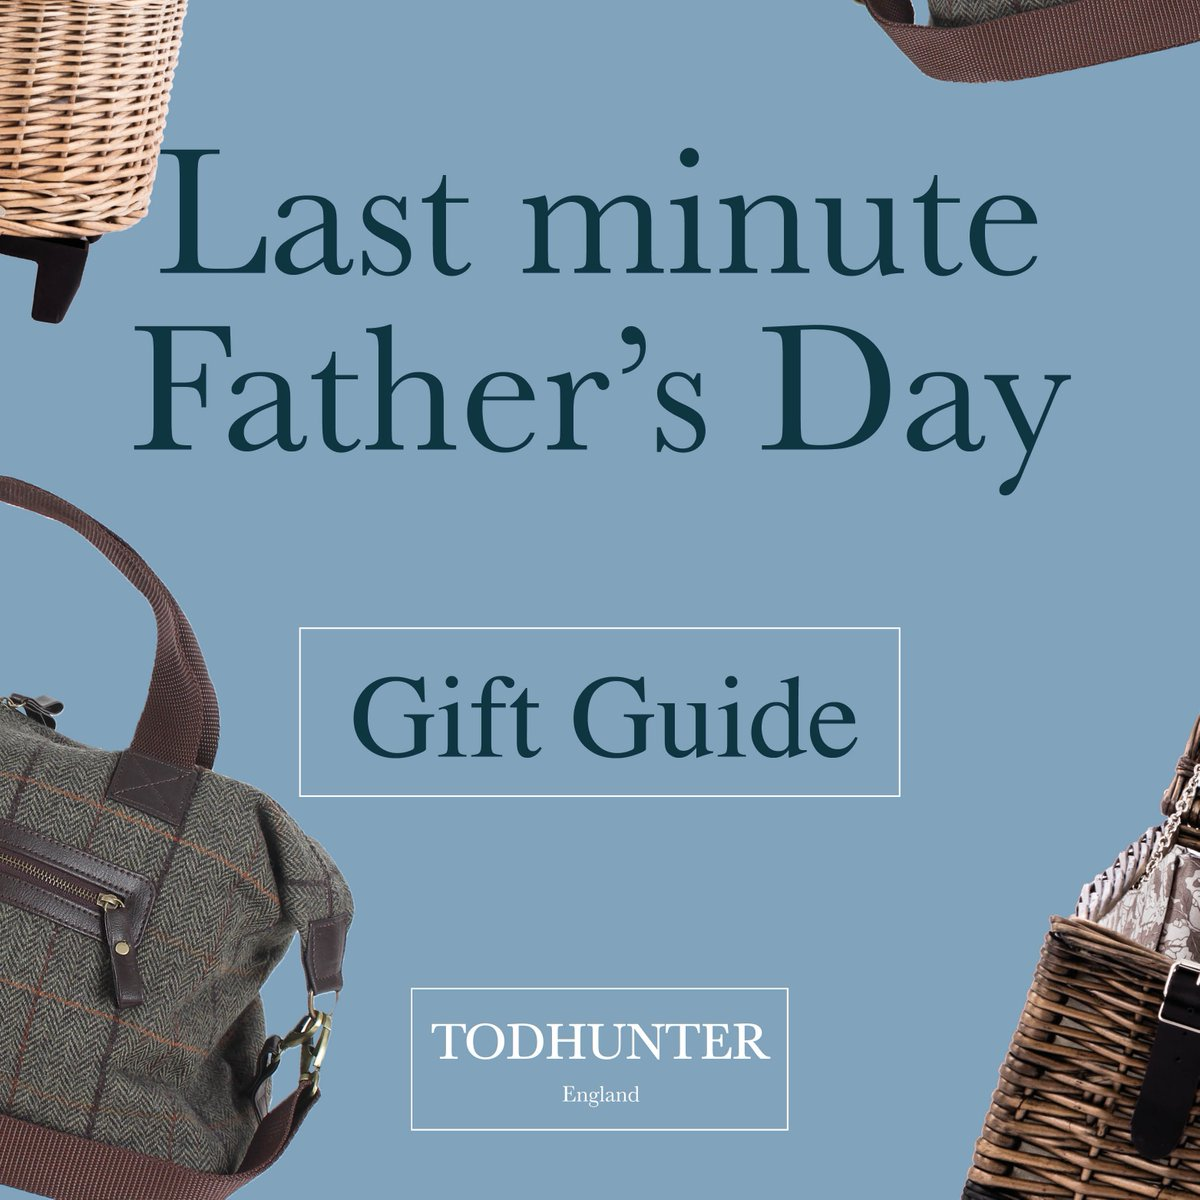 Have you left Father's Day to the last minute? Do not worry, our collection of luxury gifts is the perfect way to surprise your Dad!  Order by 14th June to get your gift in time for Sunday.  #fathersday #gardengifts #fathersdaygifts #giftideas   #lastminutefathersday #hampers